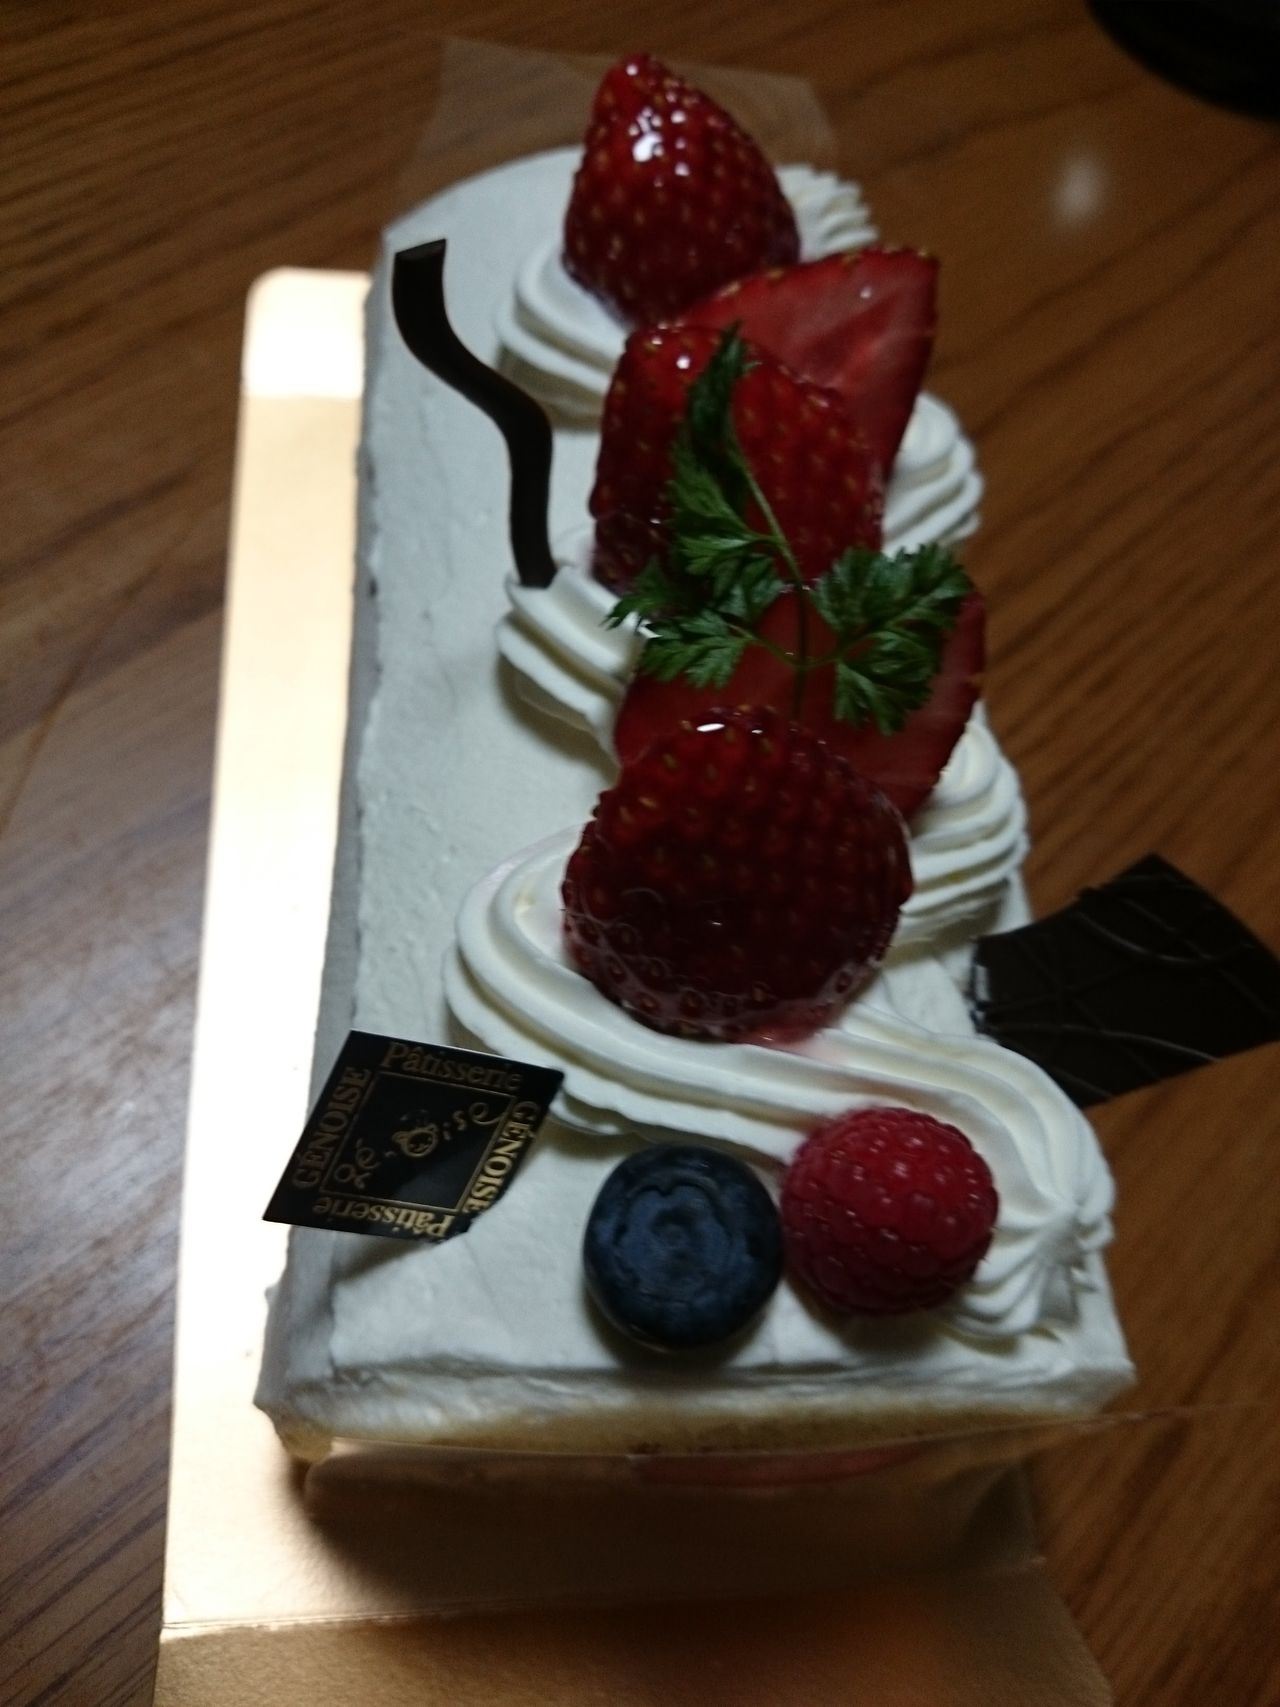 Sweet Food Dessert Freshness Food Fruit Cake Red Food And Drink No People Cream Table Strawberry Strawberry Cake ロールケーキ ケーキ 群馬 群馬県 Japan 日本 Android 高崎市